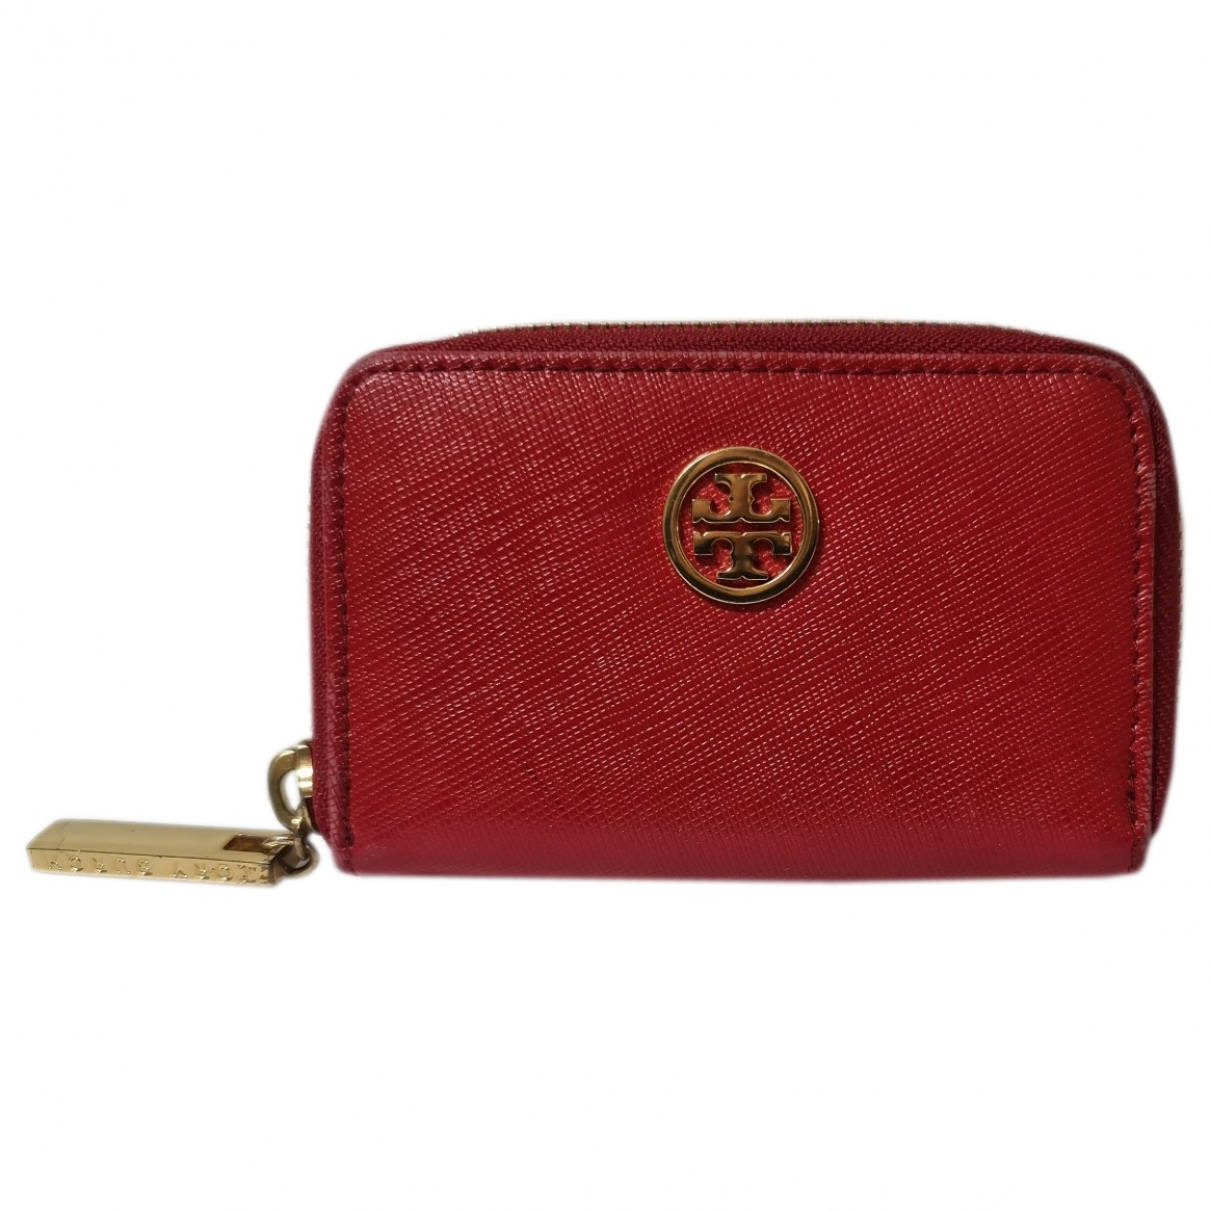 Tory Burch \N Red Leather wallet for Women \N